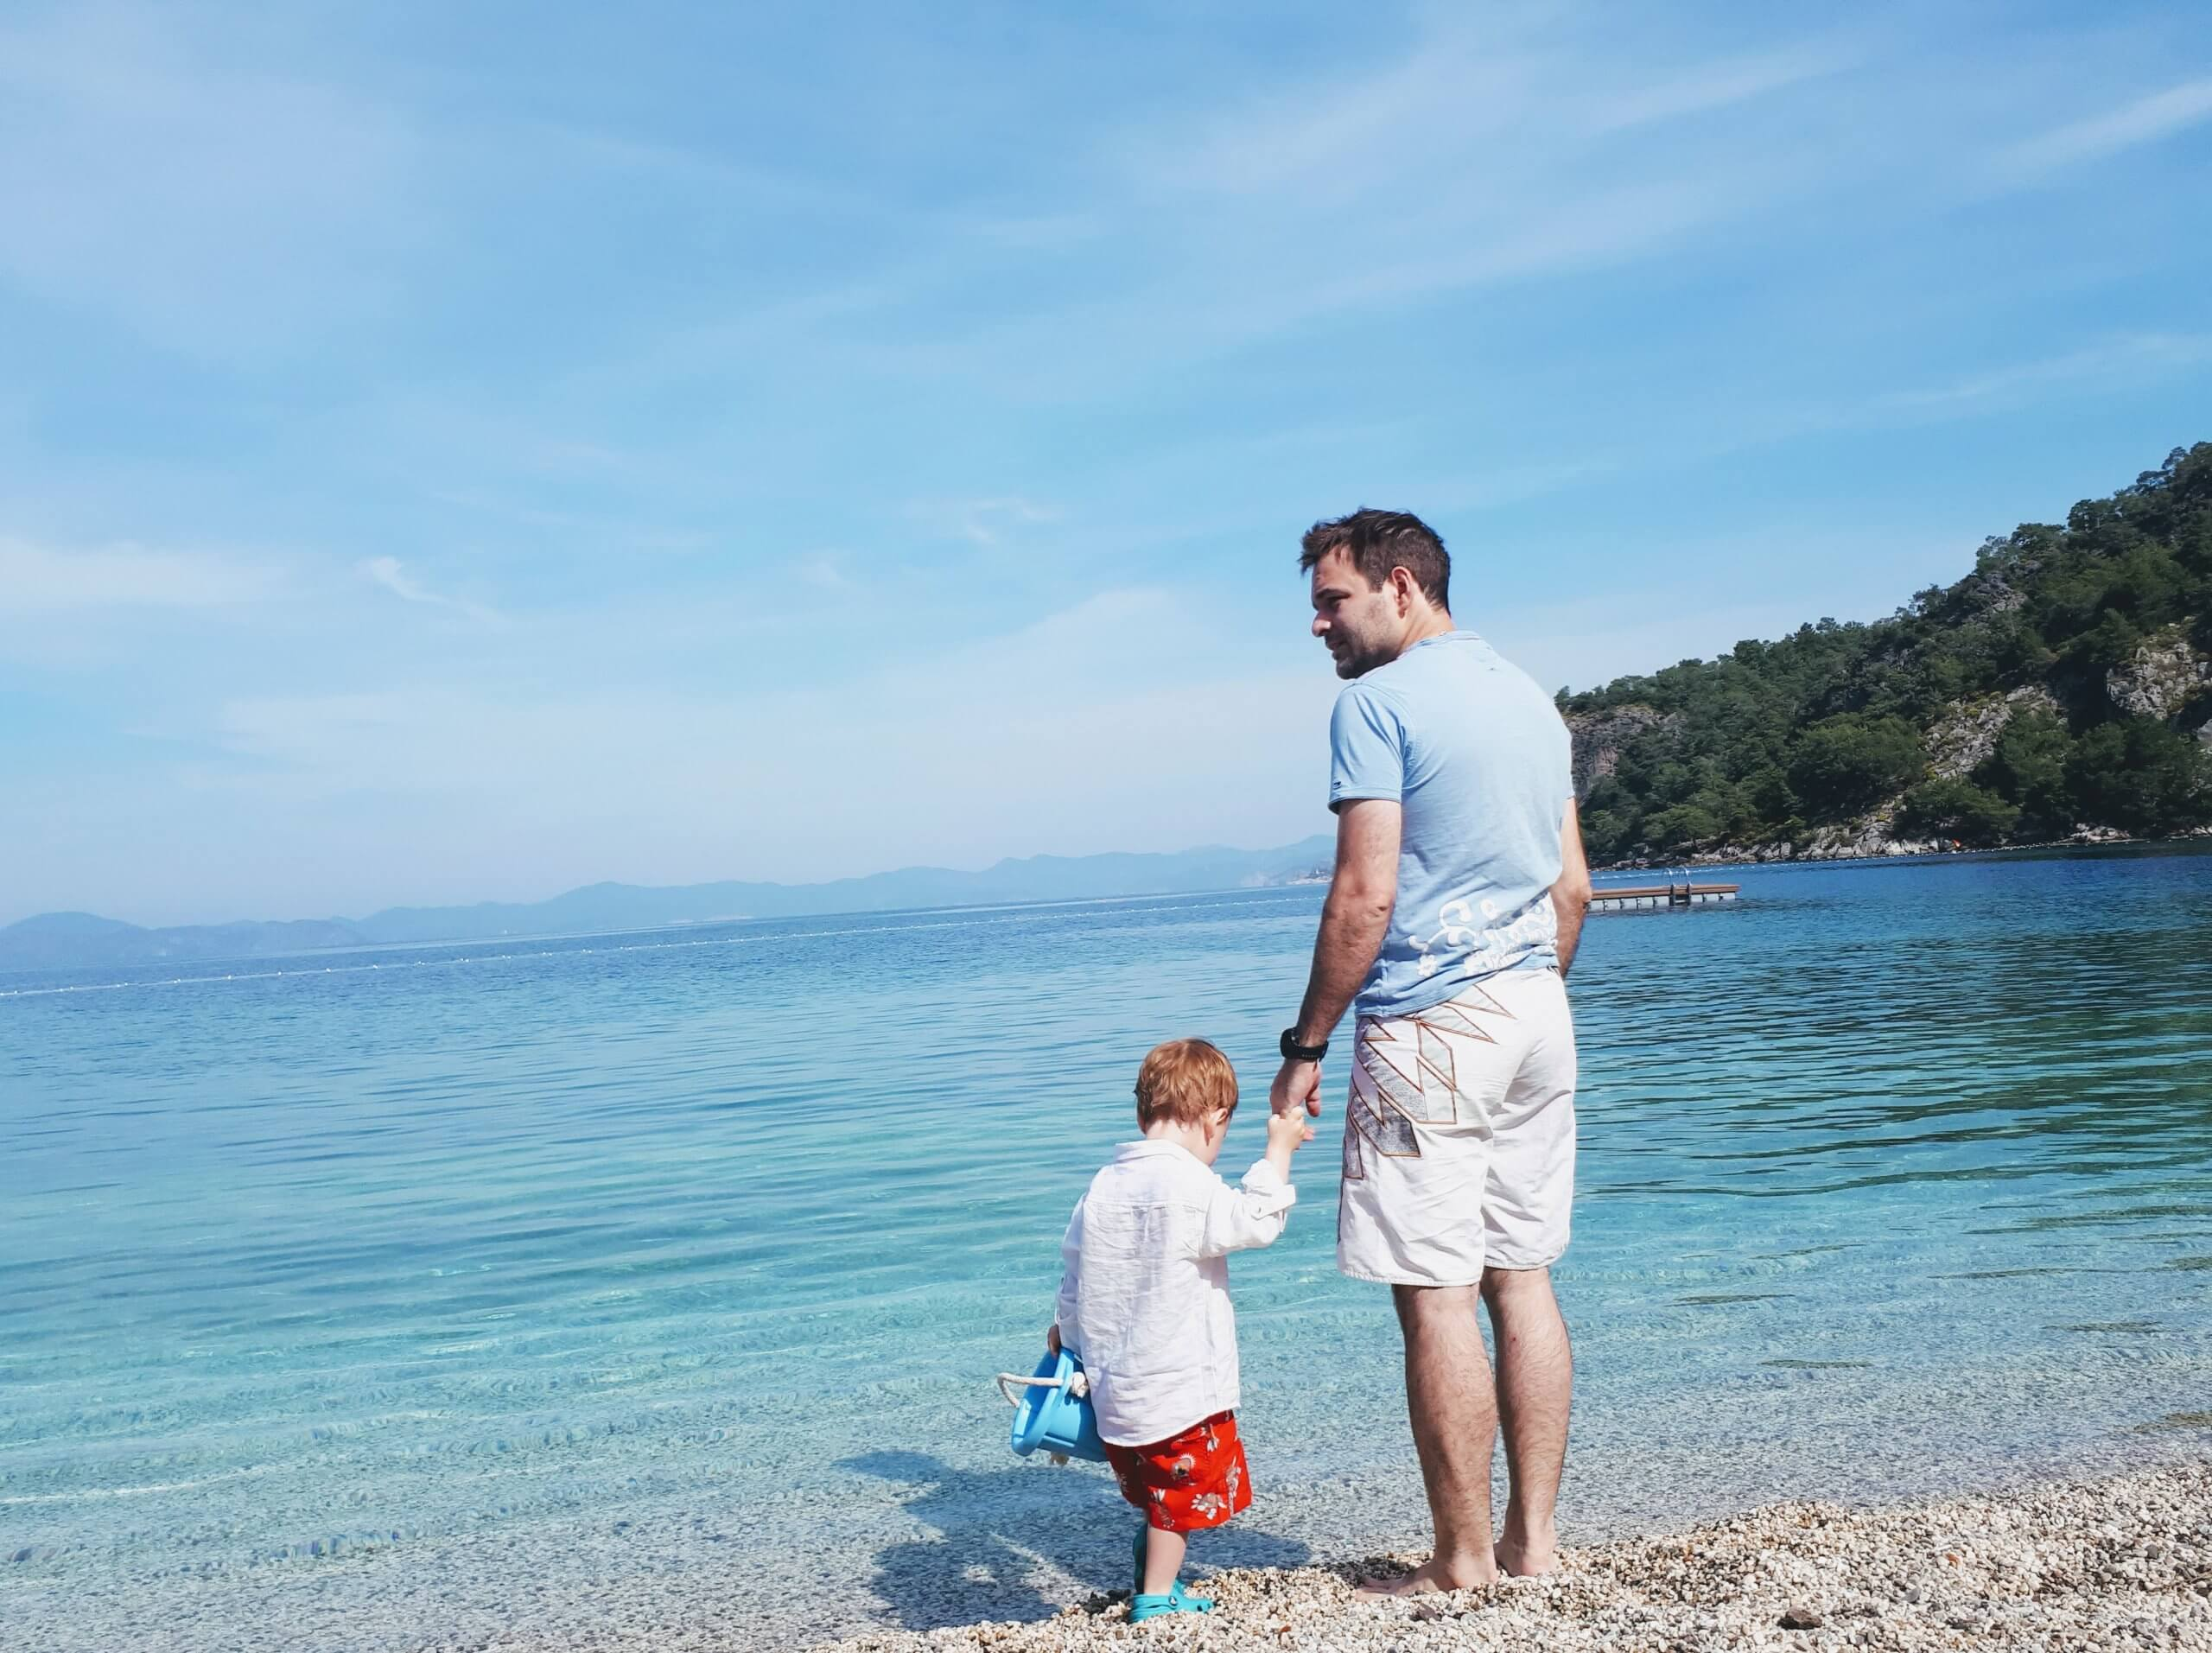 pension planning as an expat family